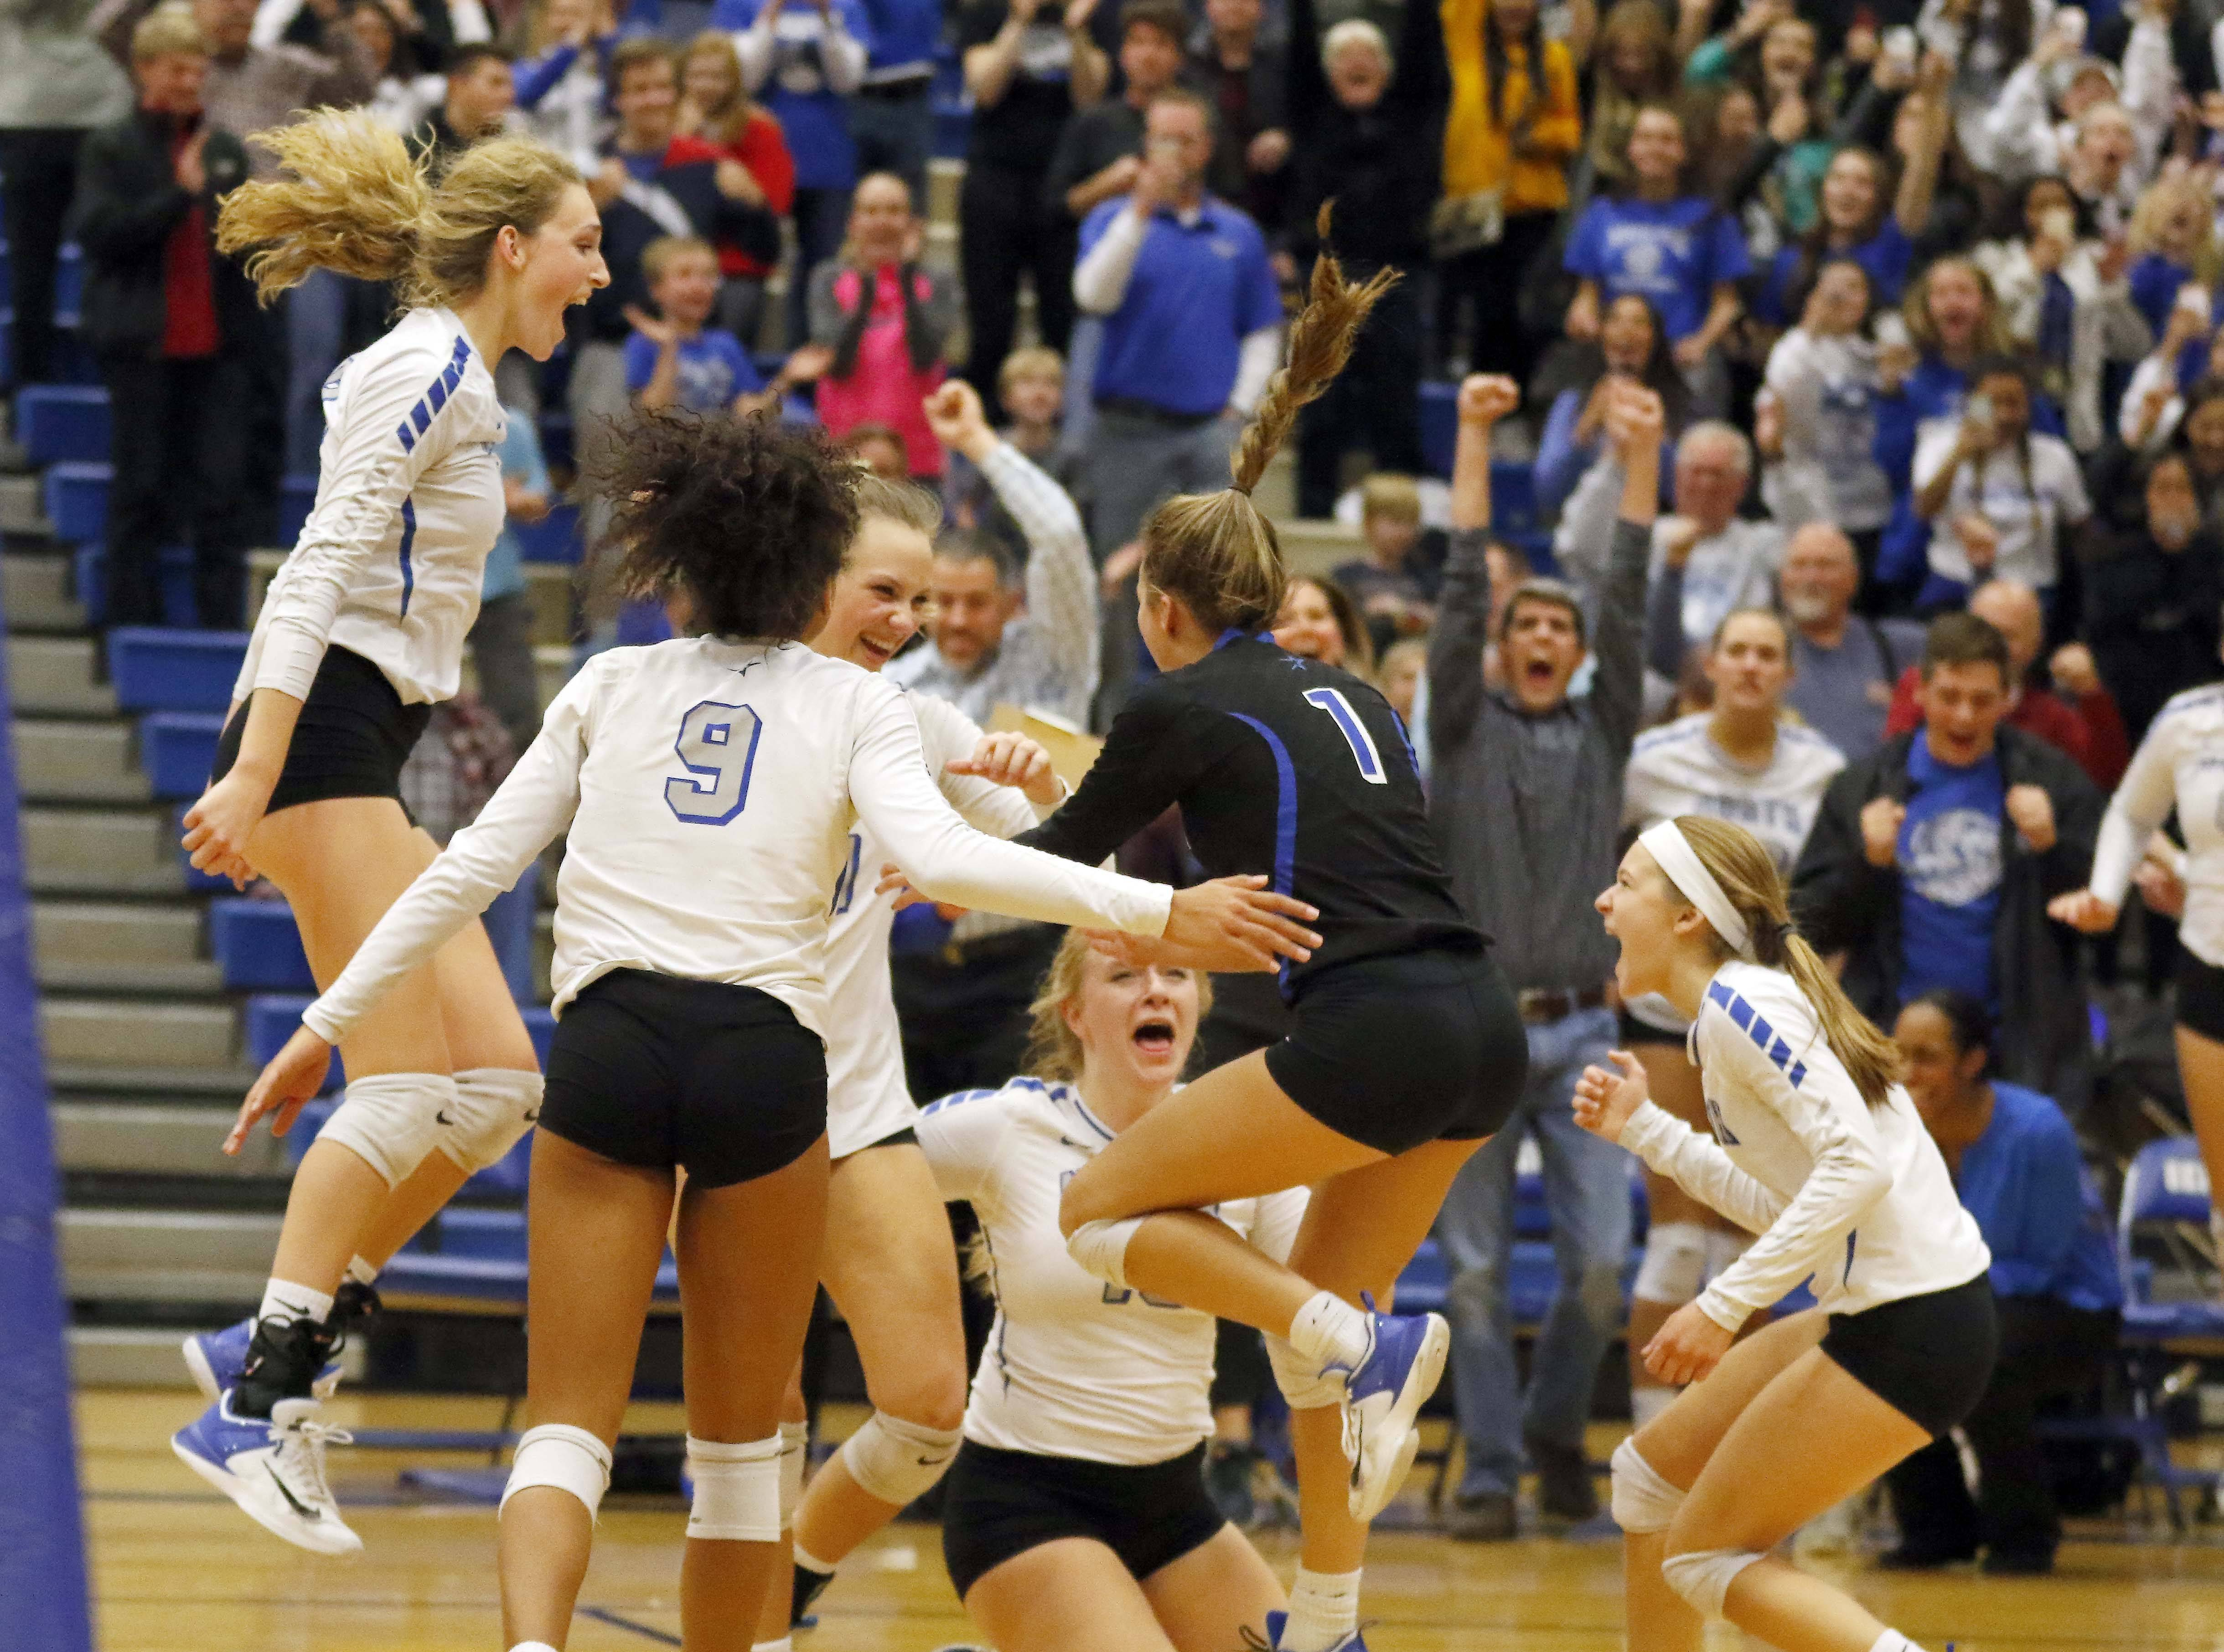 St. Charles North celebrates defeating Downers Grove North Friday in the Class 4A Geneva supersectional.